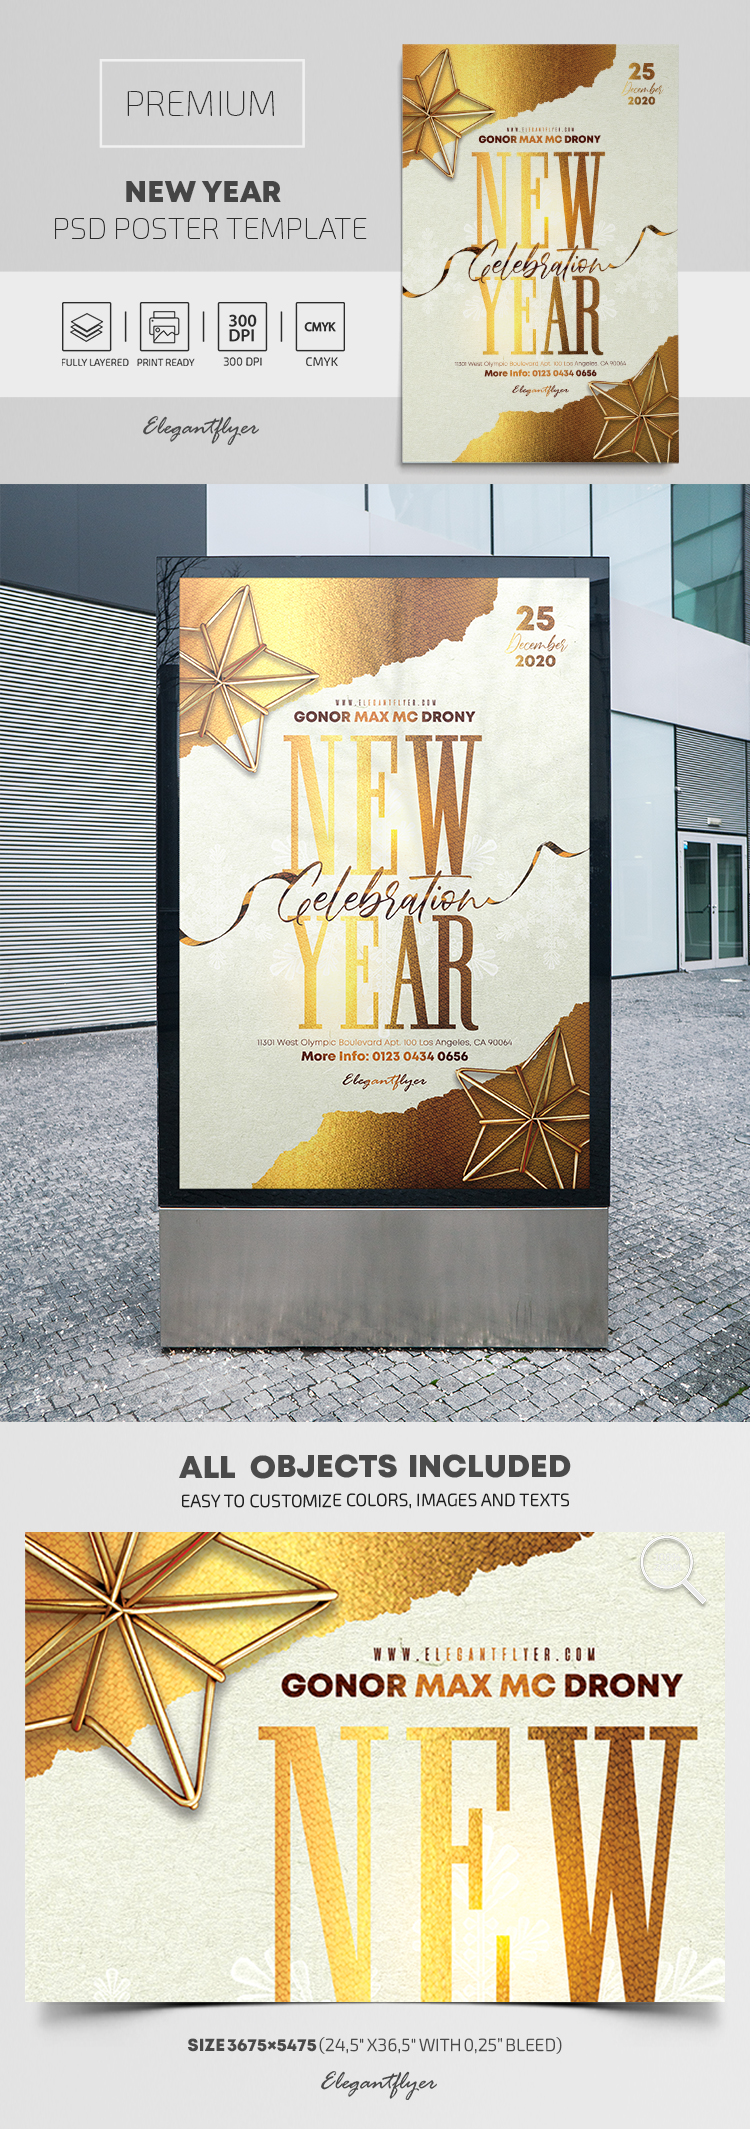 New Year – Premium PSD Poster Template